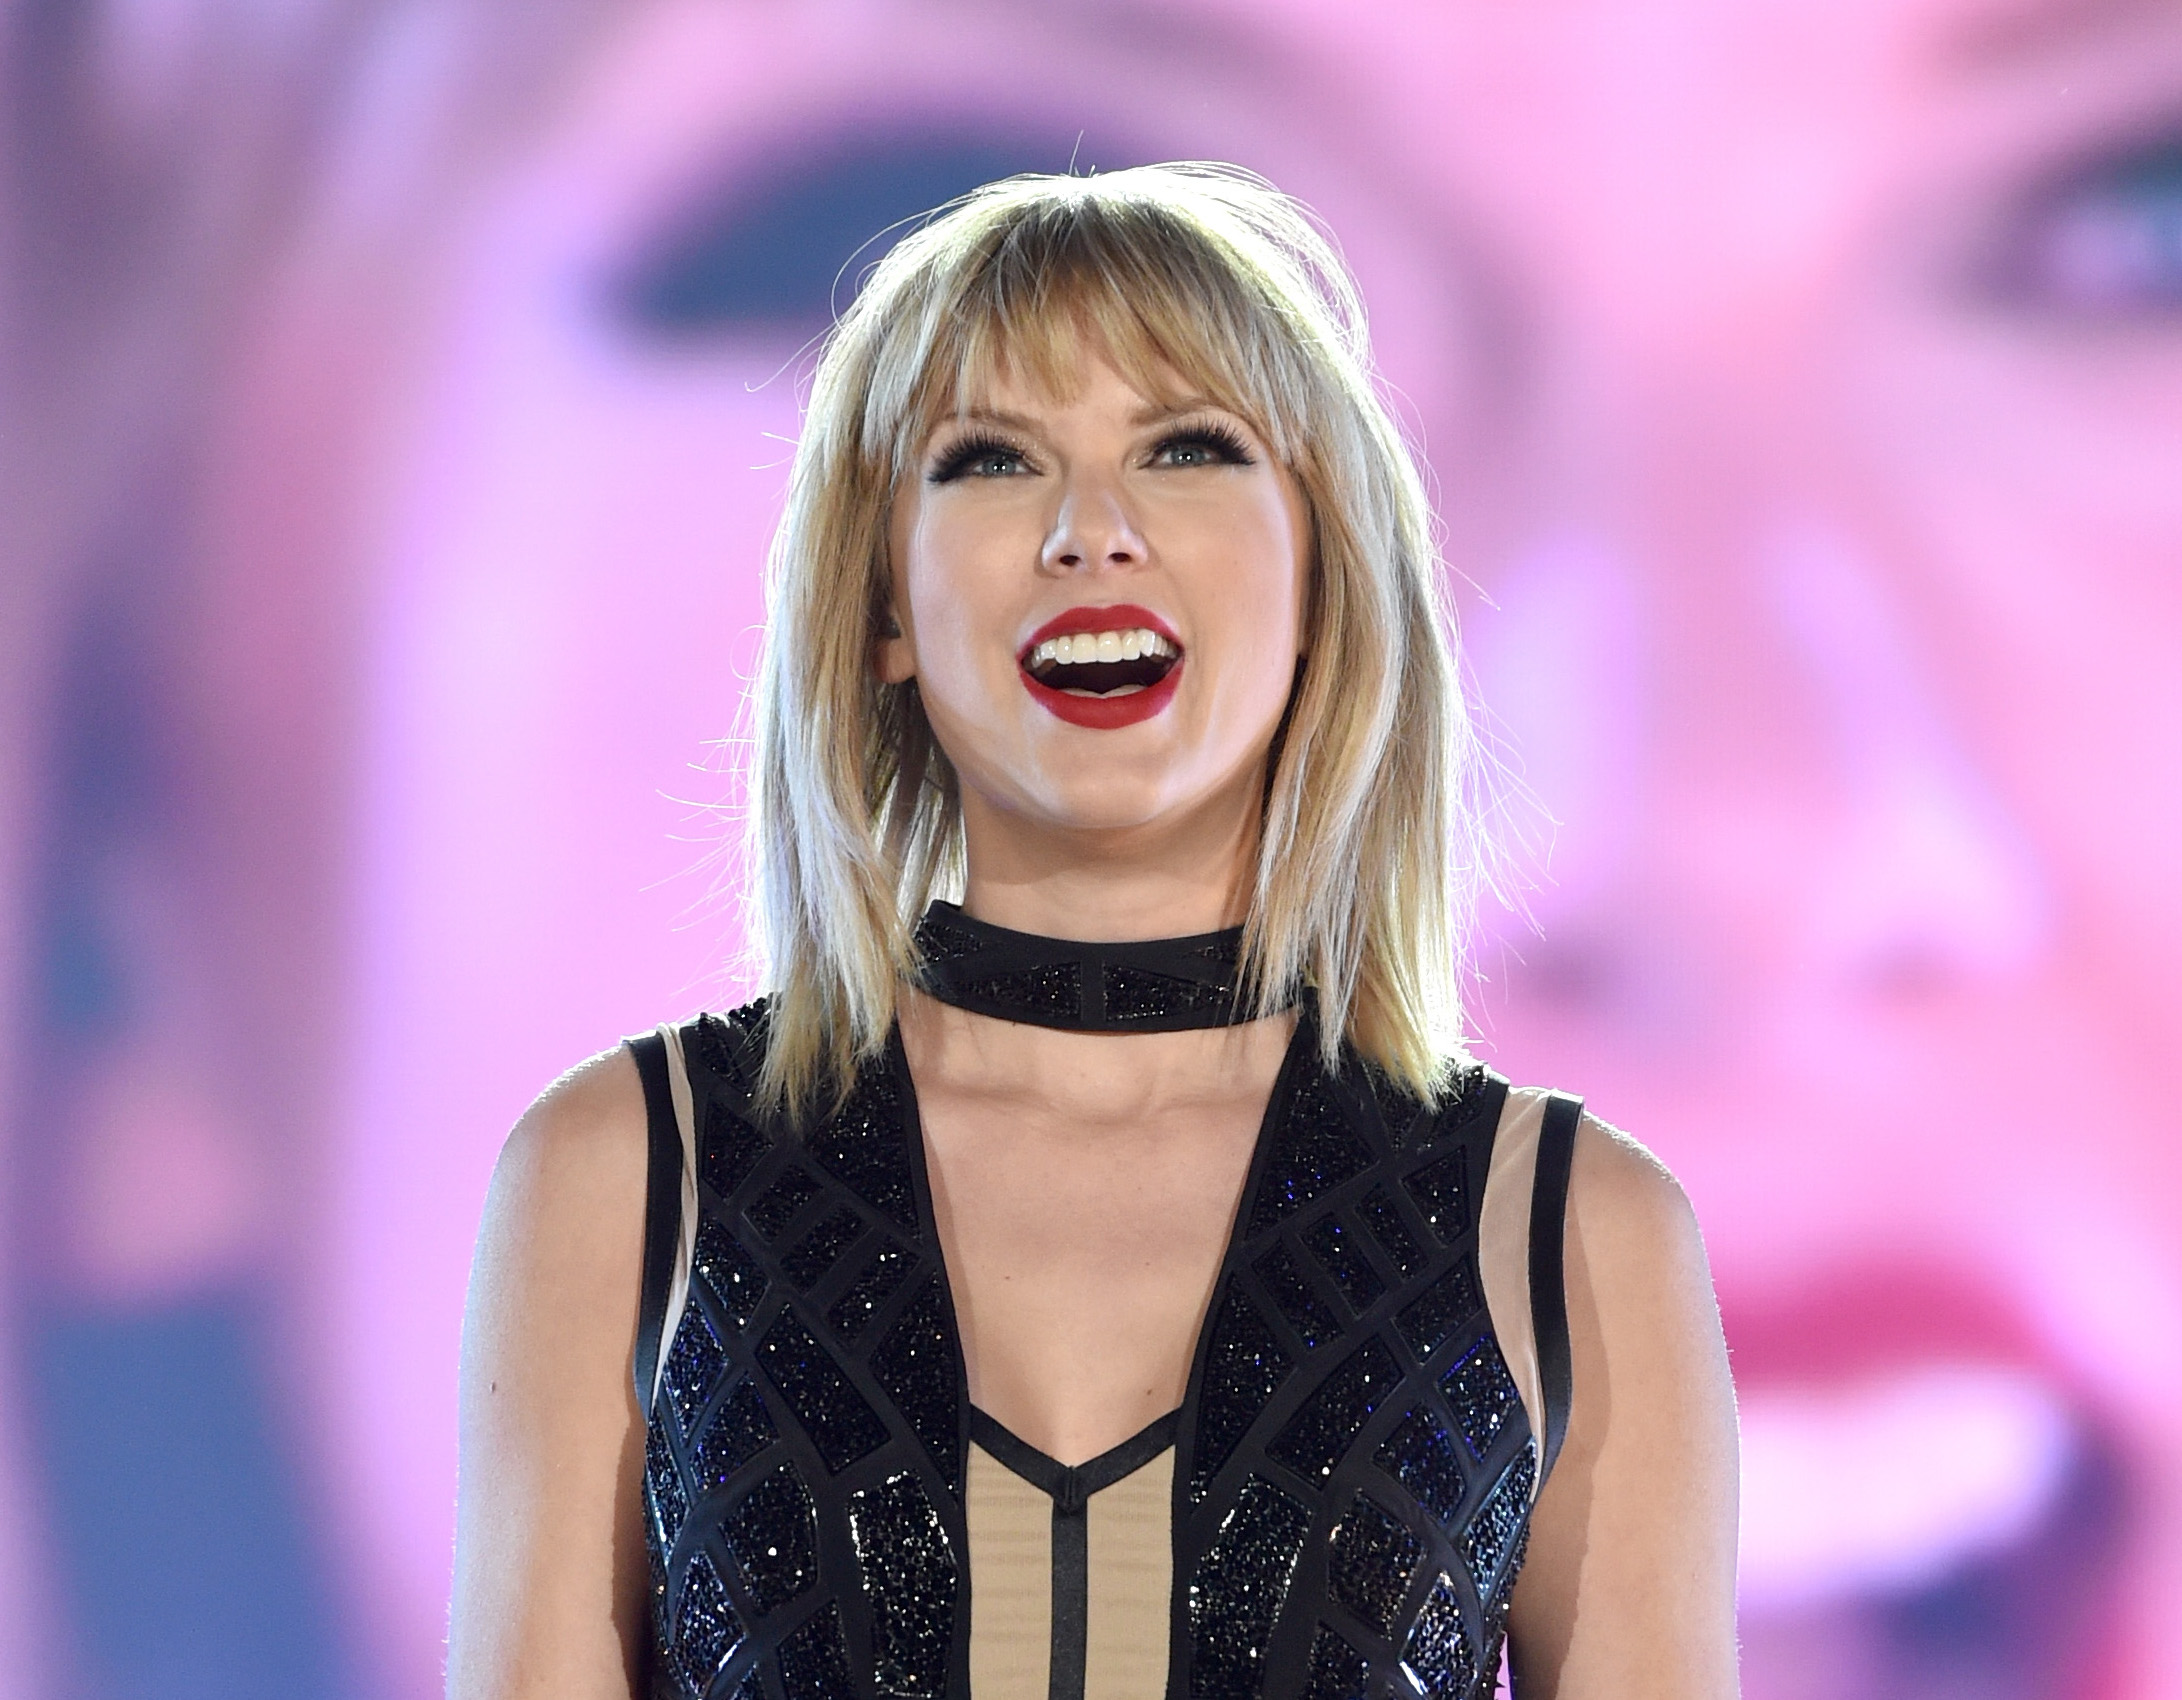 Here's Taylor Swift casually voting like the truest American